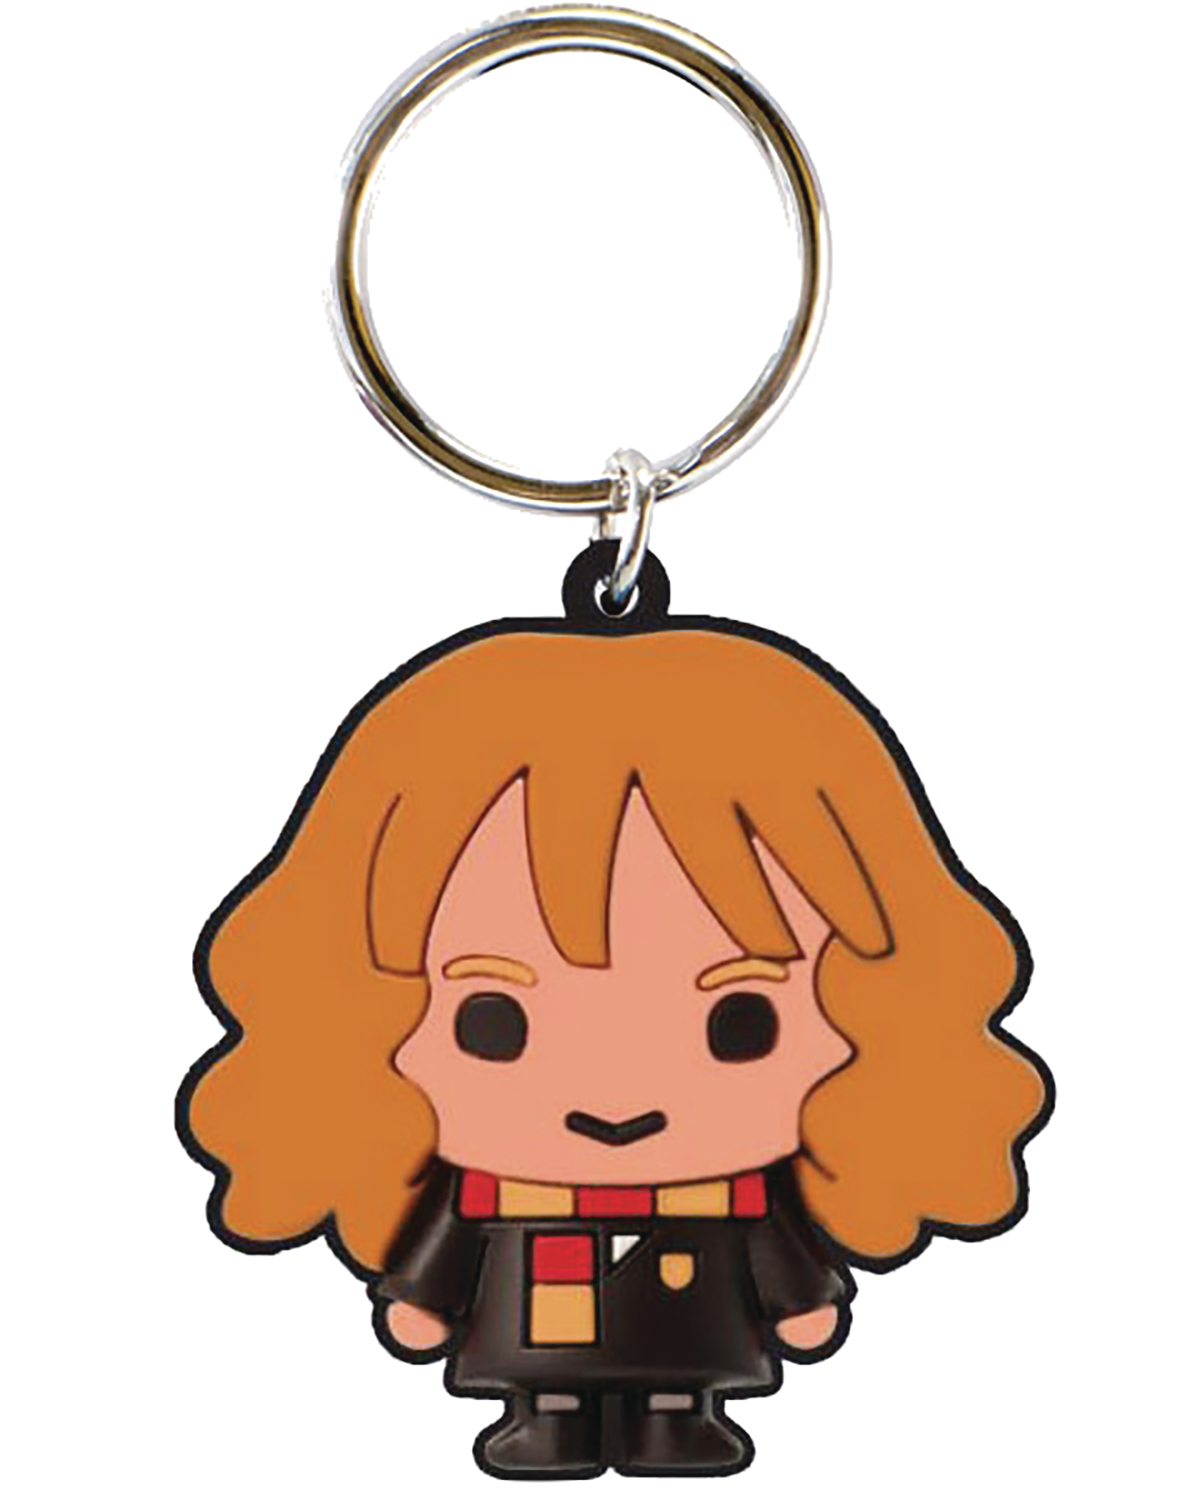 HARRY POTTER HERMIONE SOFT TOUCH PVC KEY RING